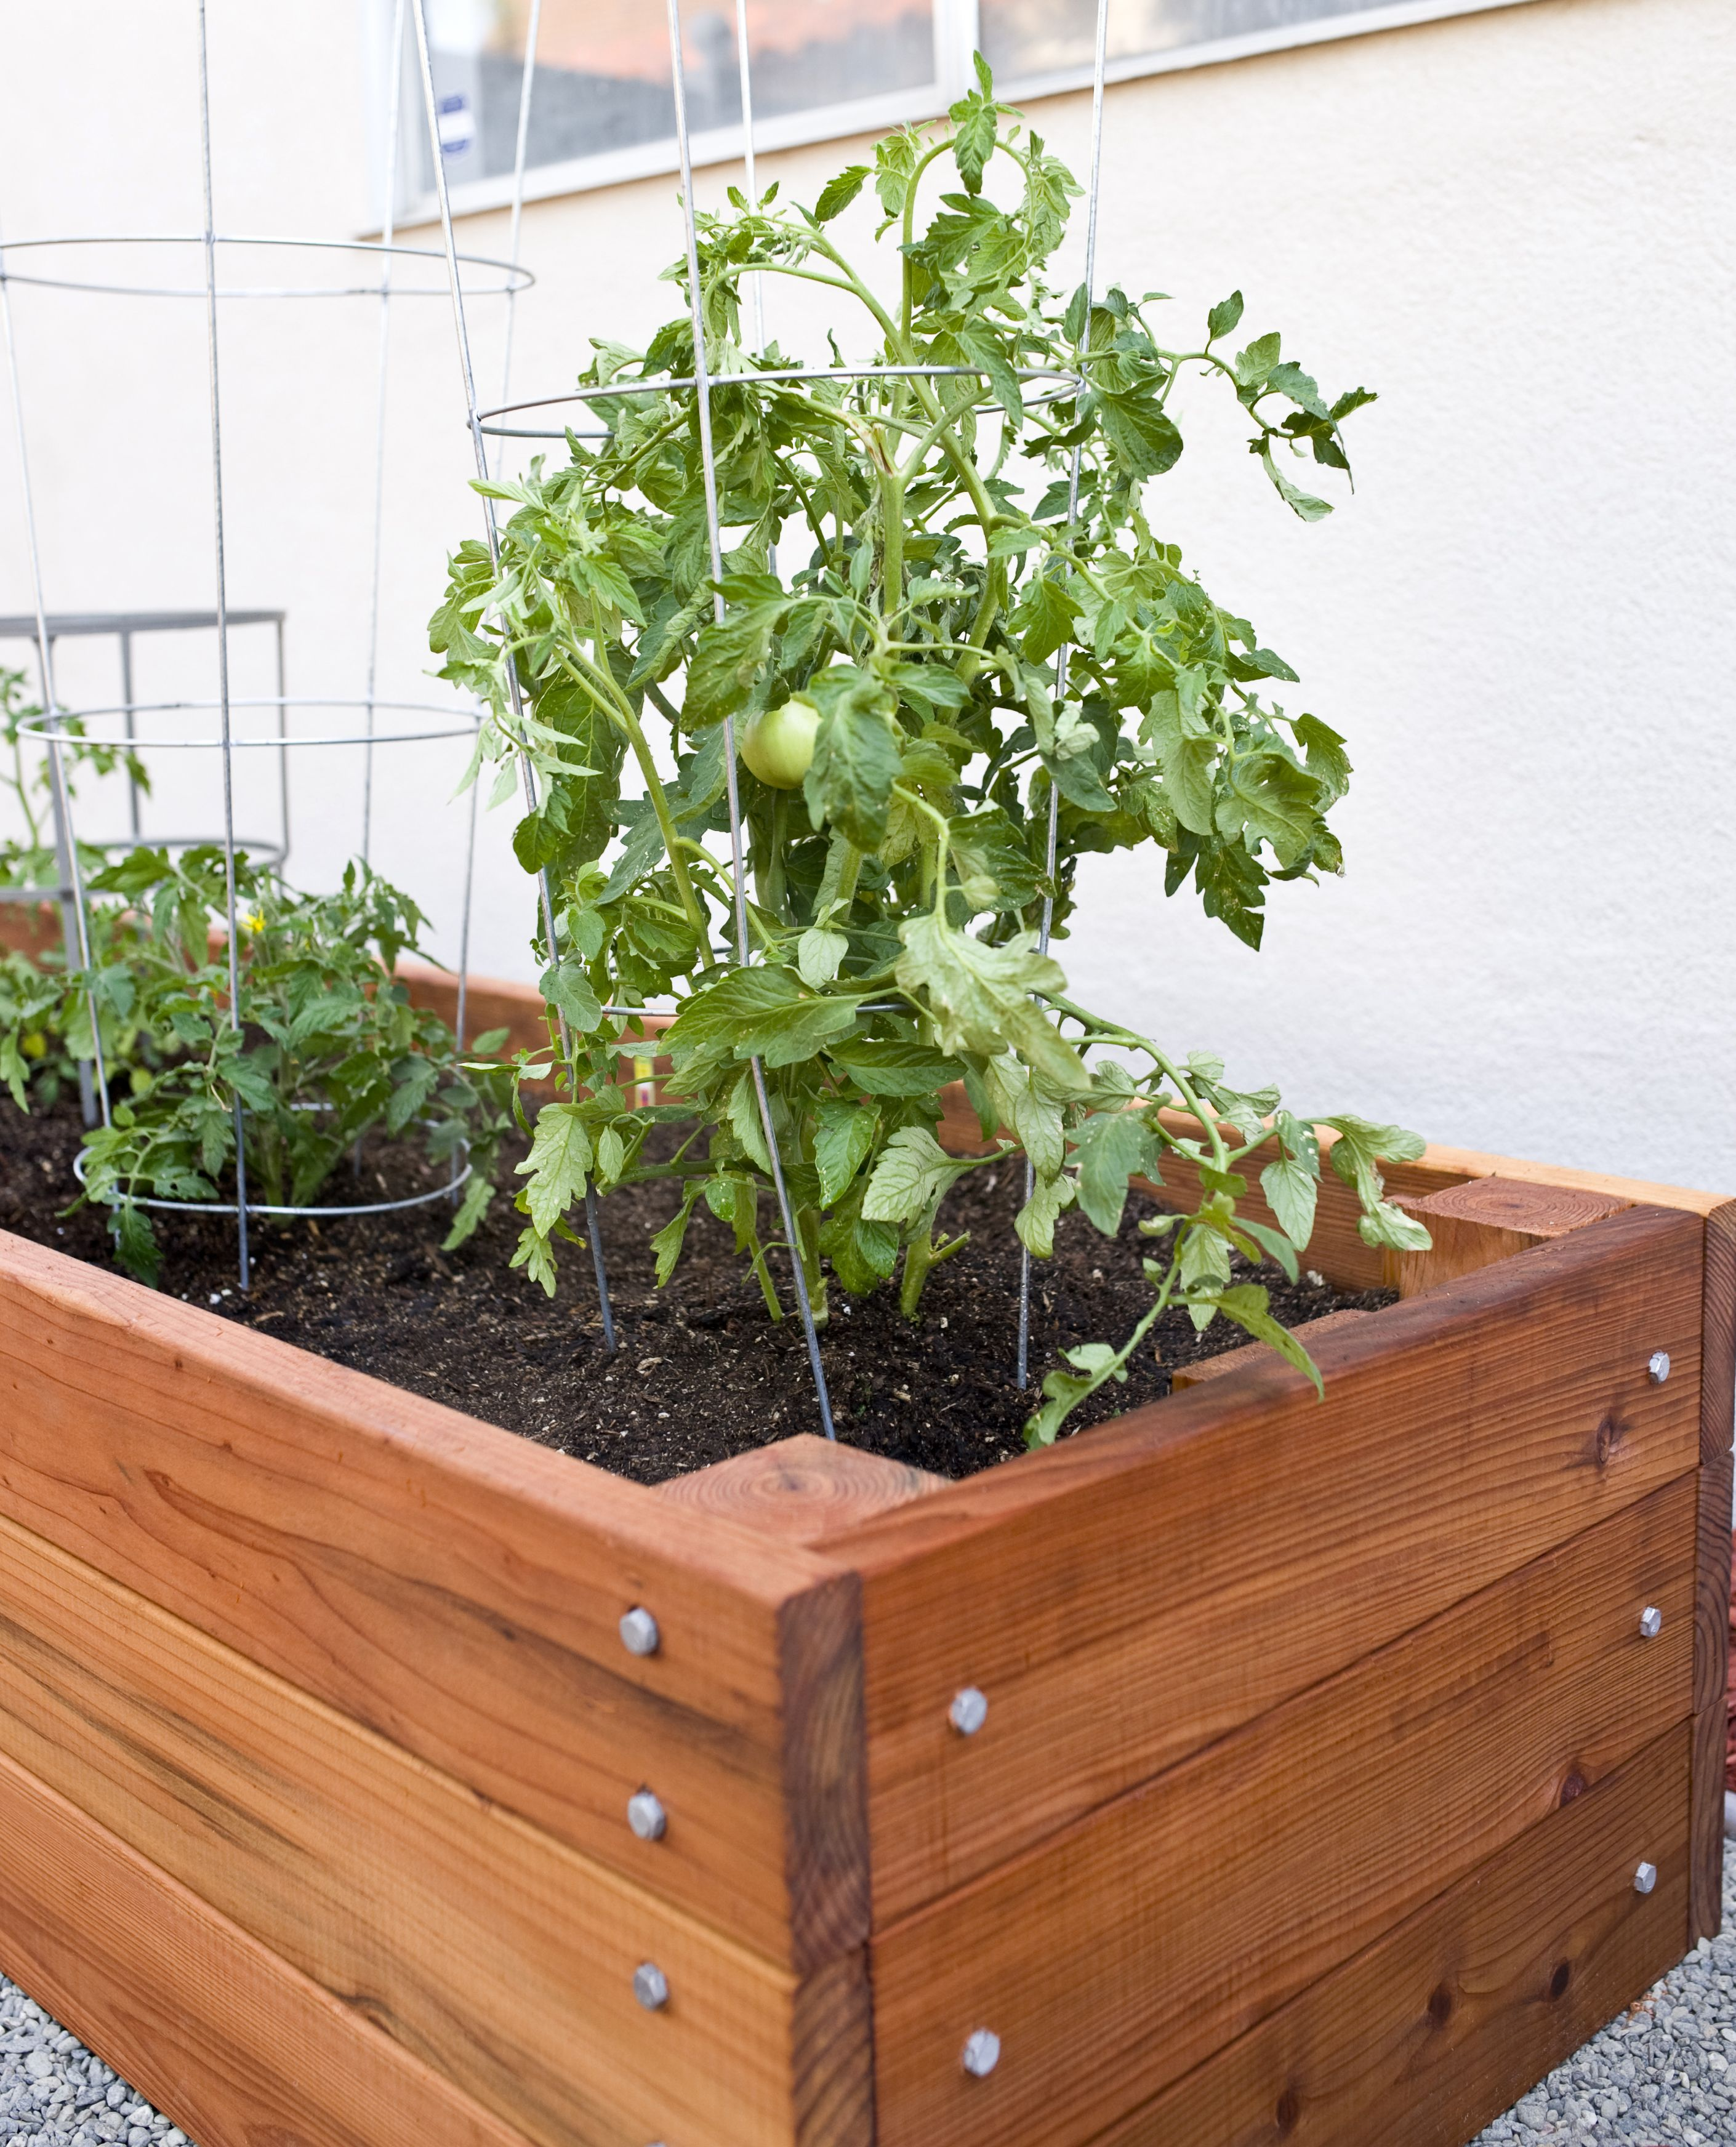 Diy Deck Flower Boxes Large Redwood Planter Box For Tomatoes Diy Projects